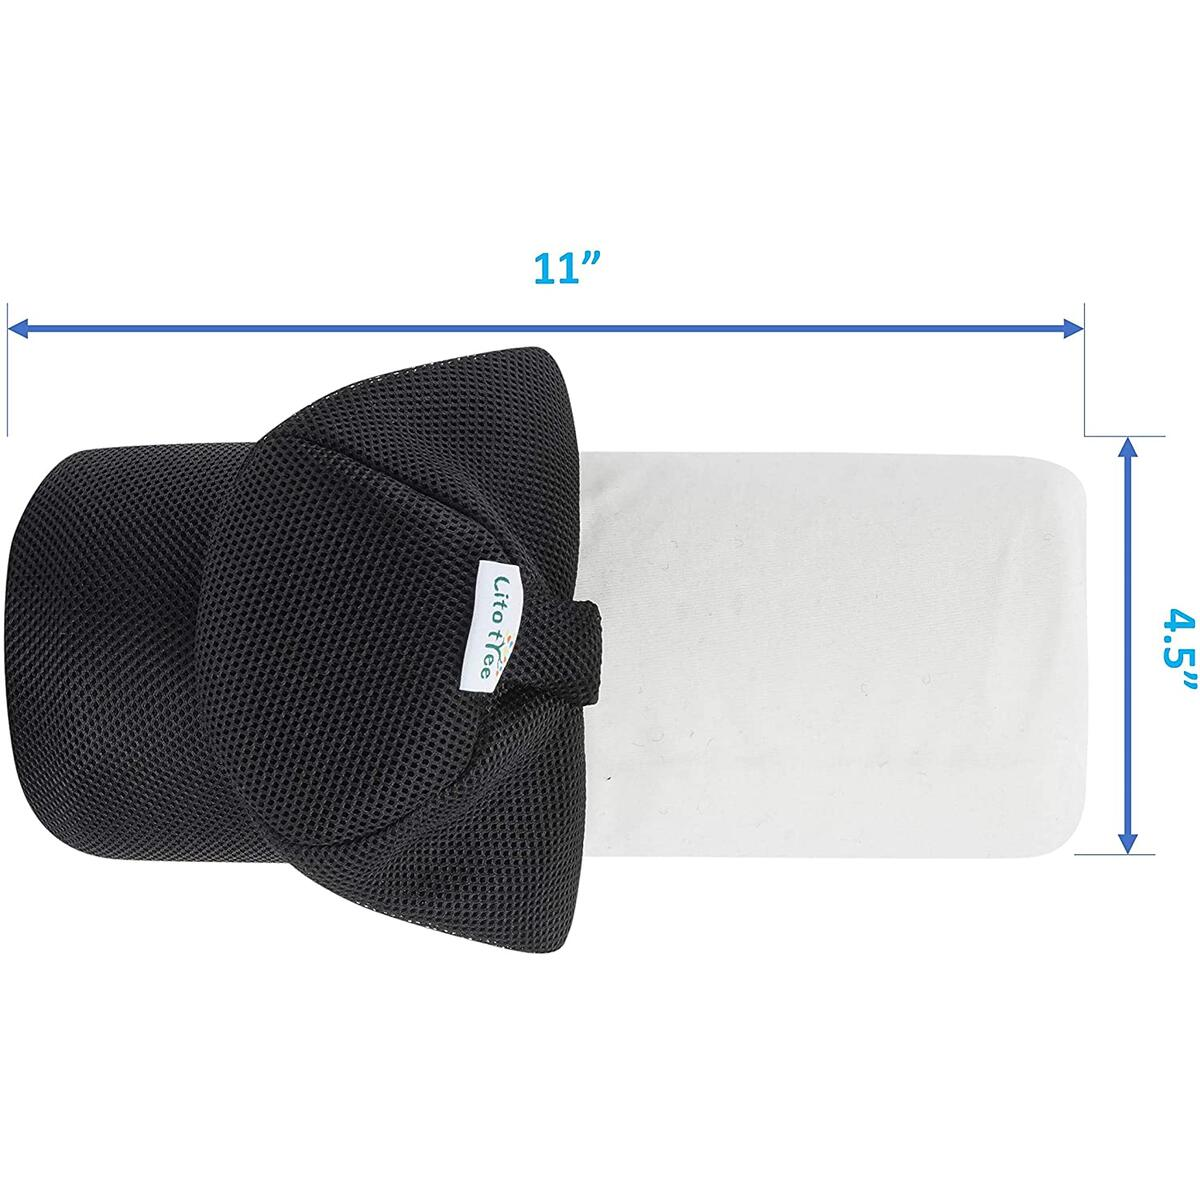 LitoTree Lumbar Roll for Back Support - 100% Memory Foam - Optimized Firmness - 11 Inches Long with 4.5 Inches Diameter - Breathable Mesh Lumbar Pillow Cover - for Comfortable Alignment and Support